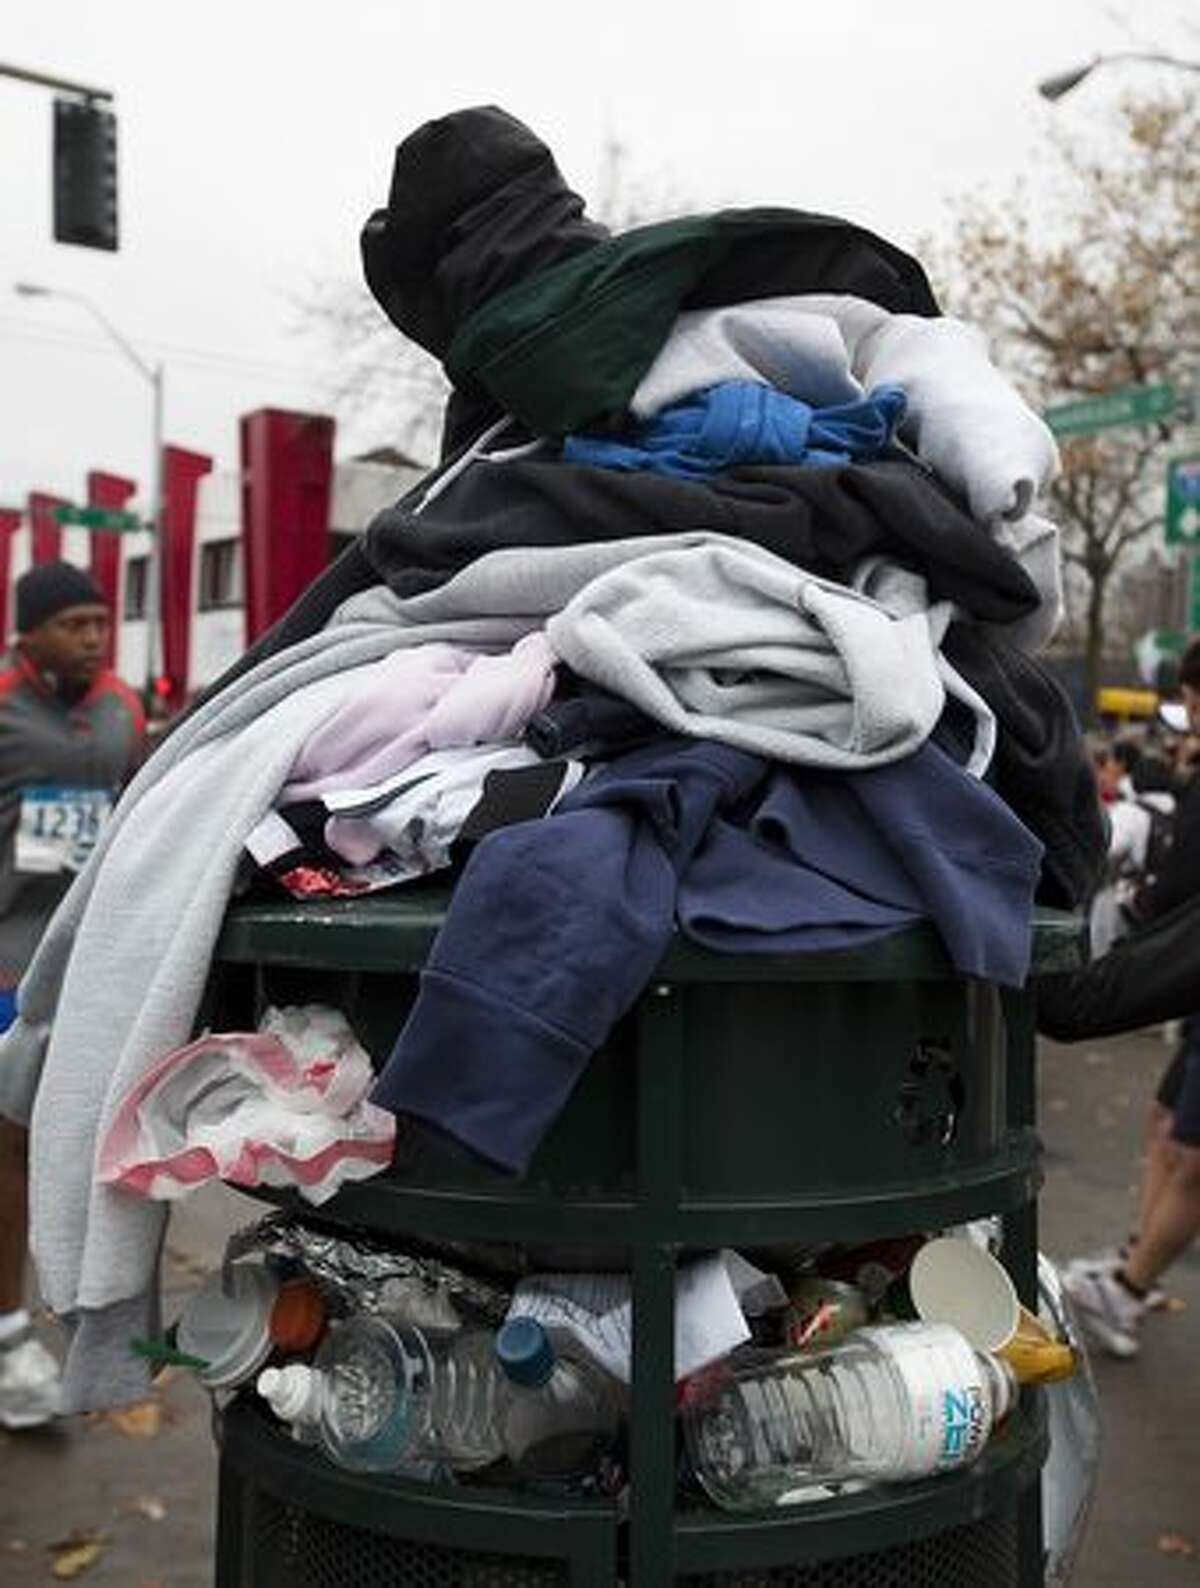 A pile of sweaters sit atop a garbage prior to the Seattle Marathon on Sunday.